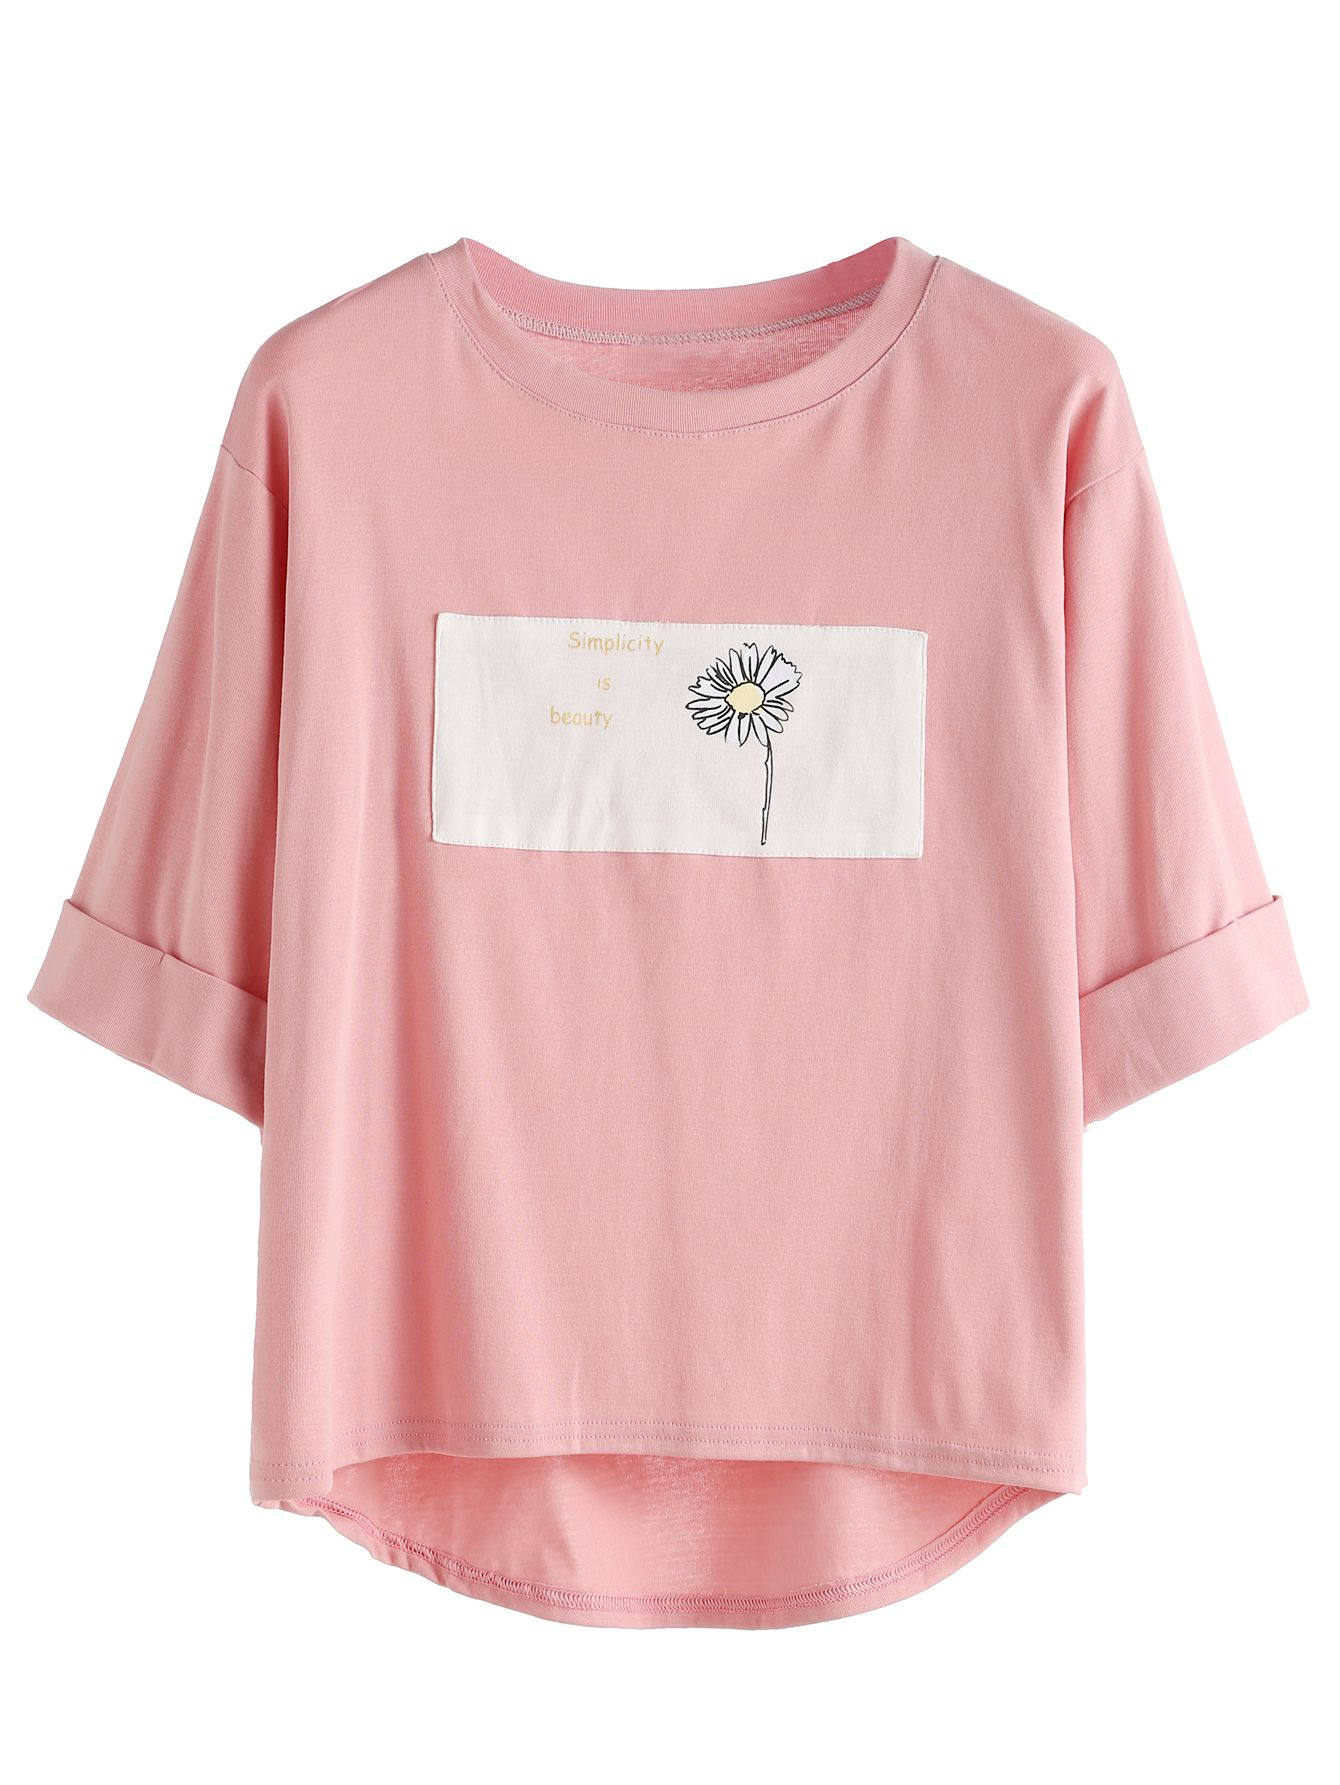 b24669f7906 Pink Contrast Daisy Print High Low Cuffed T-shirt Mobile Site ...